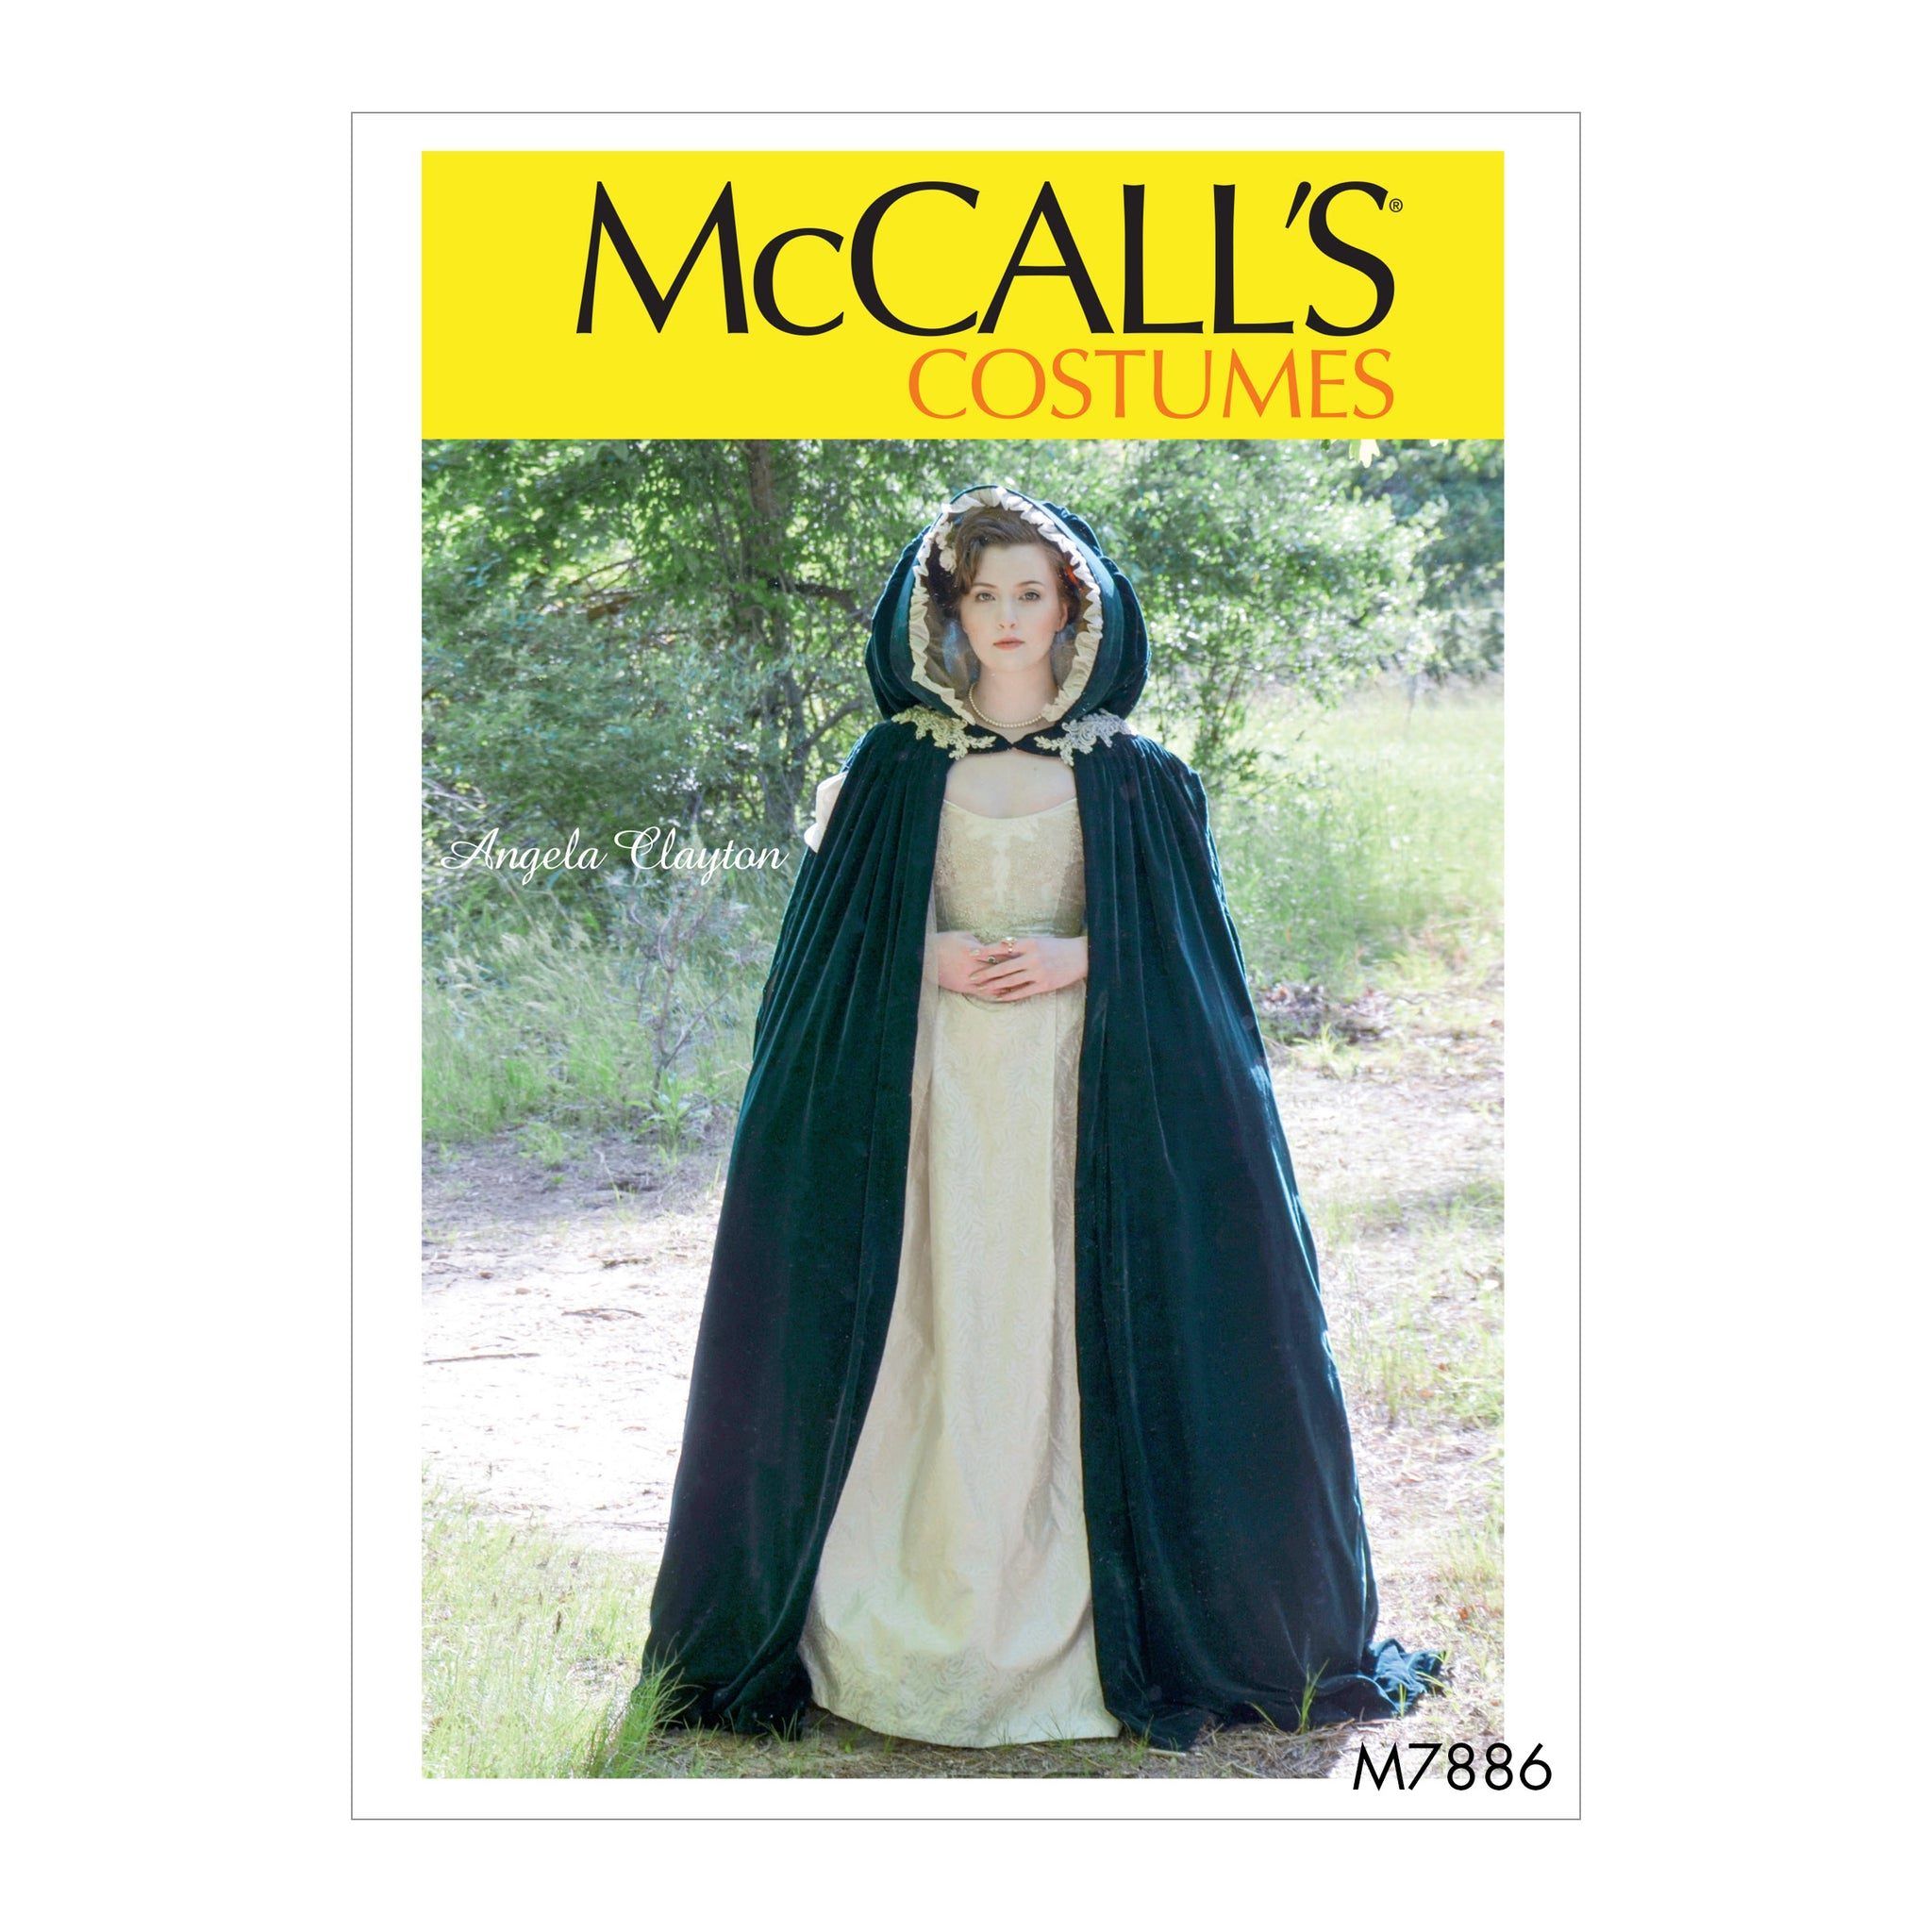 McCall's M7886MIS Misses' Costume All Sizes in One Envelope